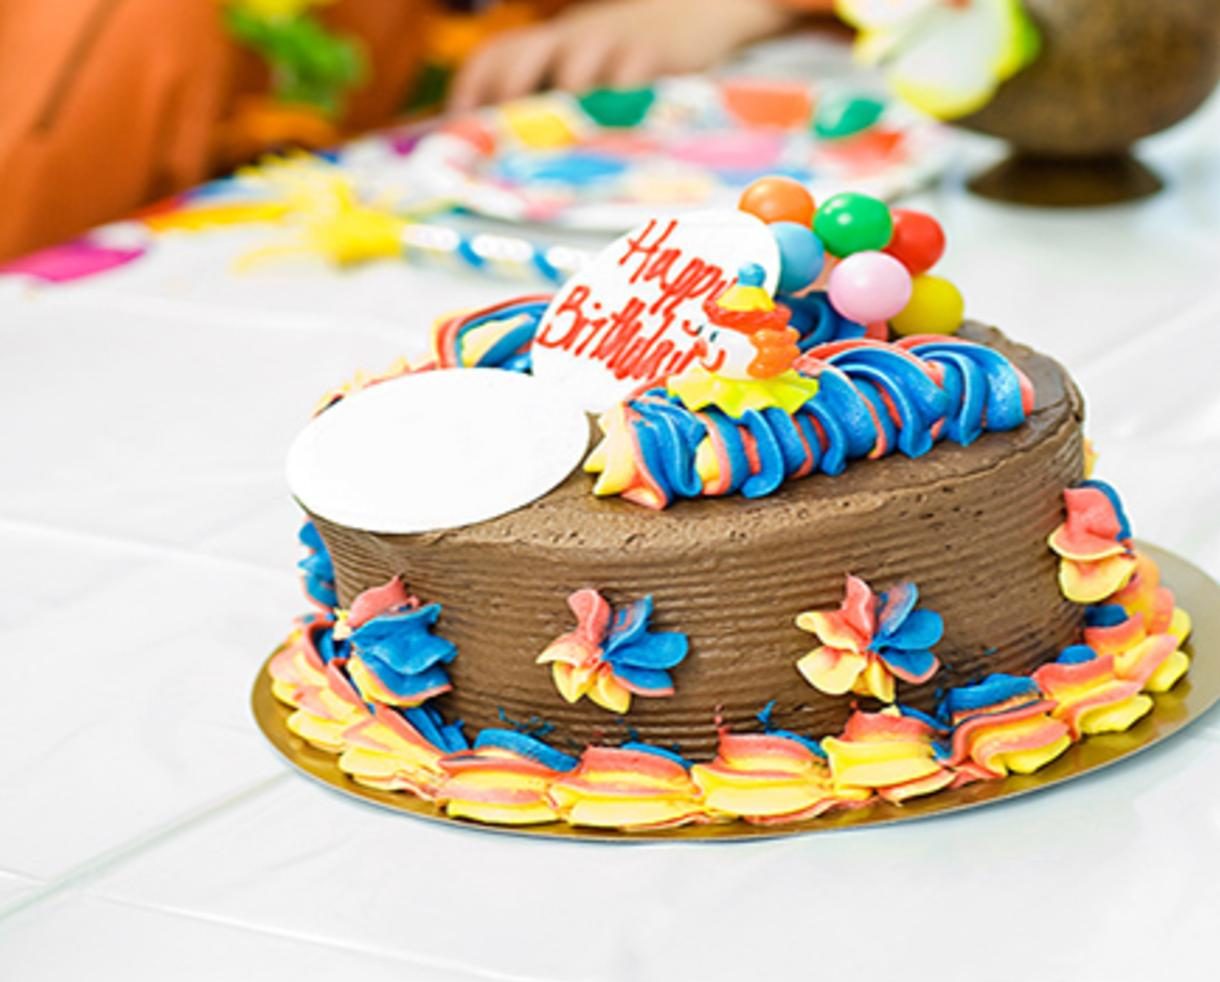 how to cut a birthday cake